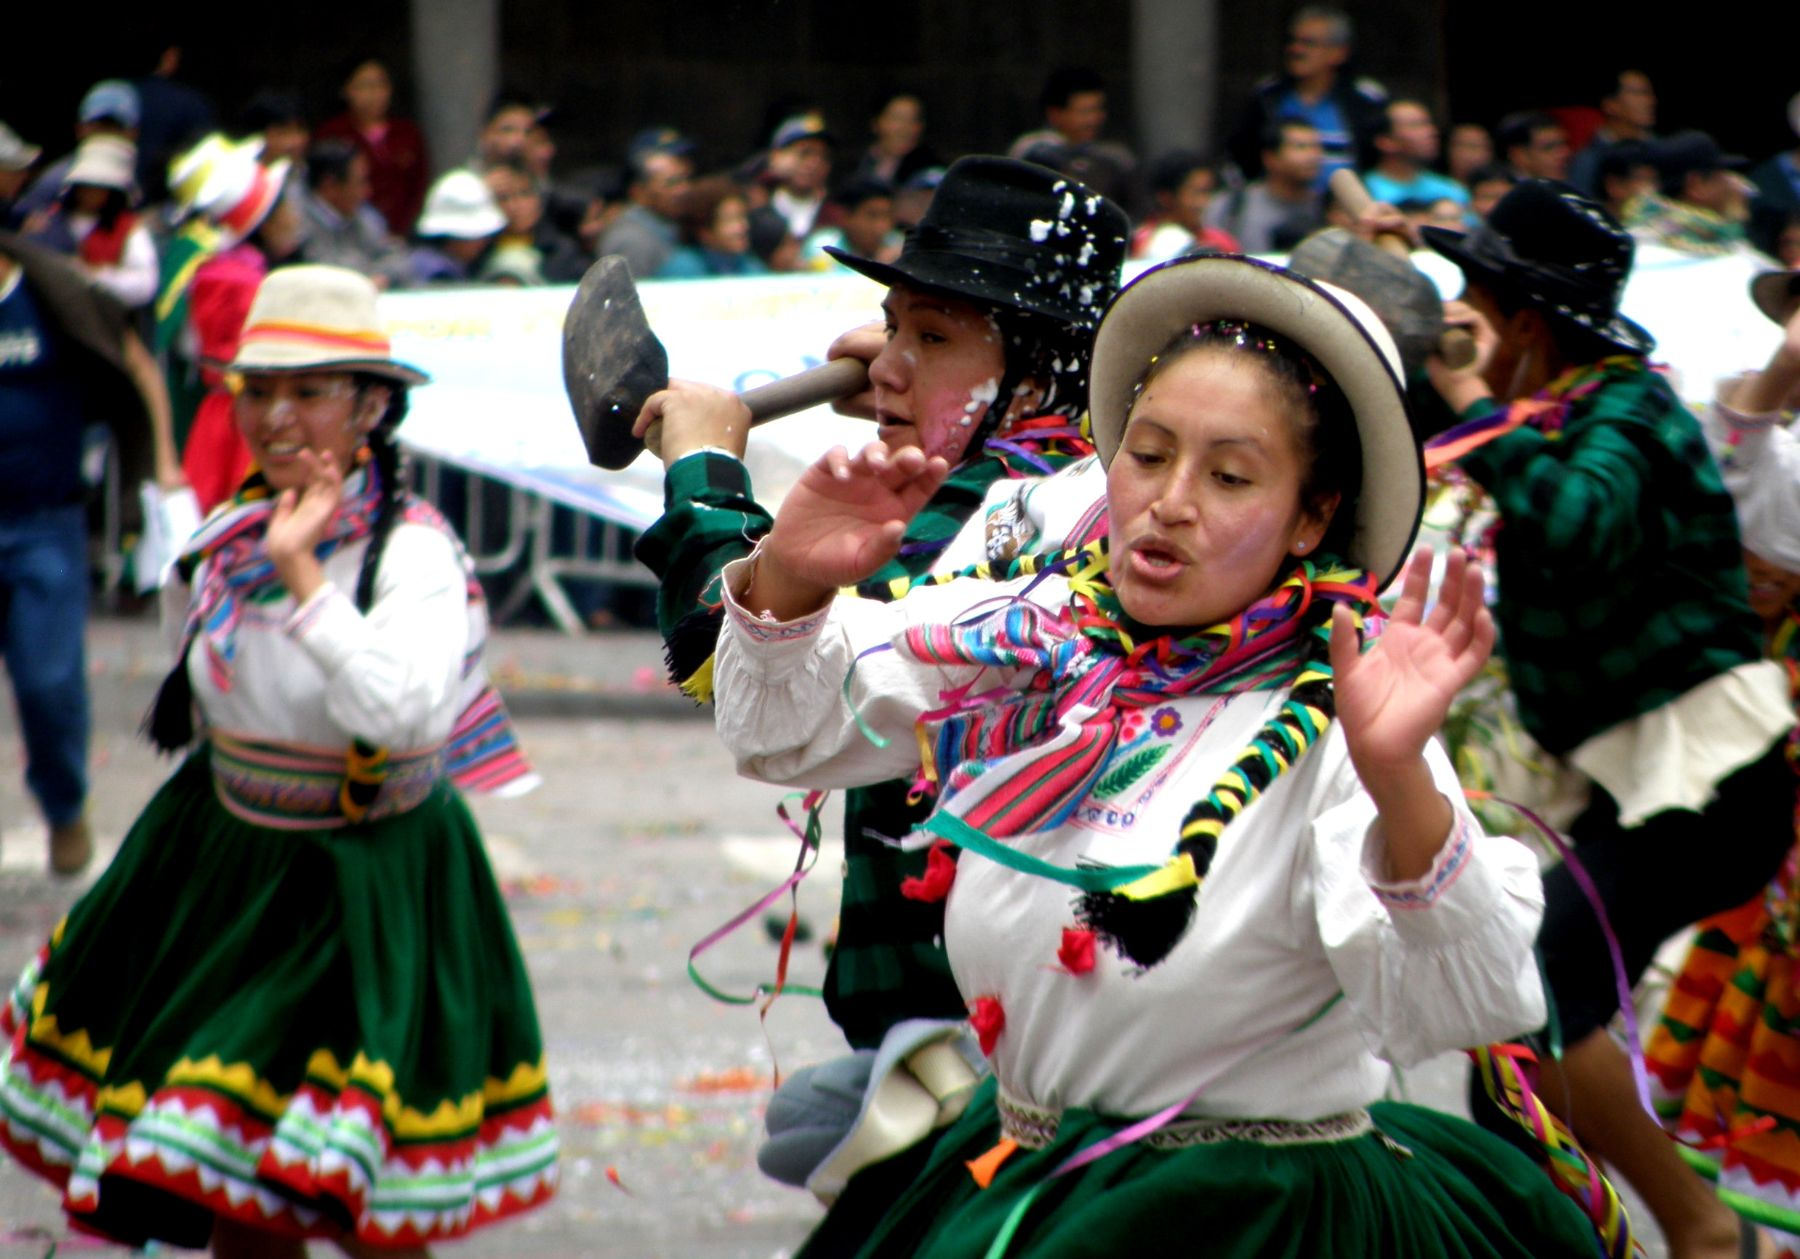 Cusco's Carnival of Coya to gather some 5000 tourists | News